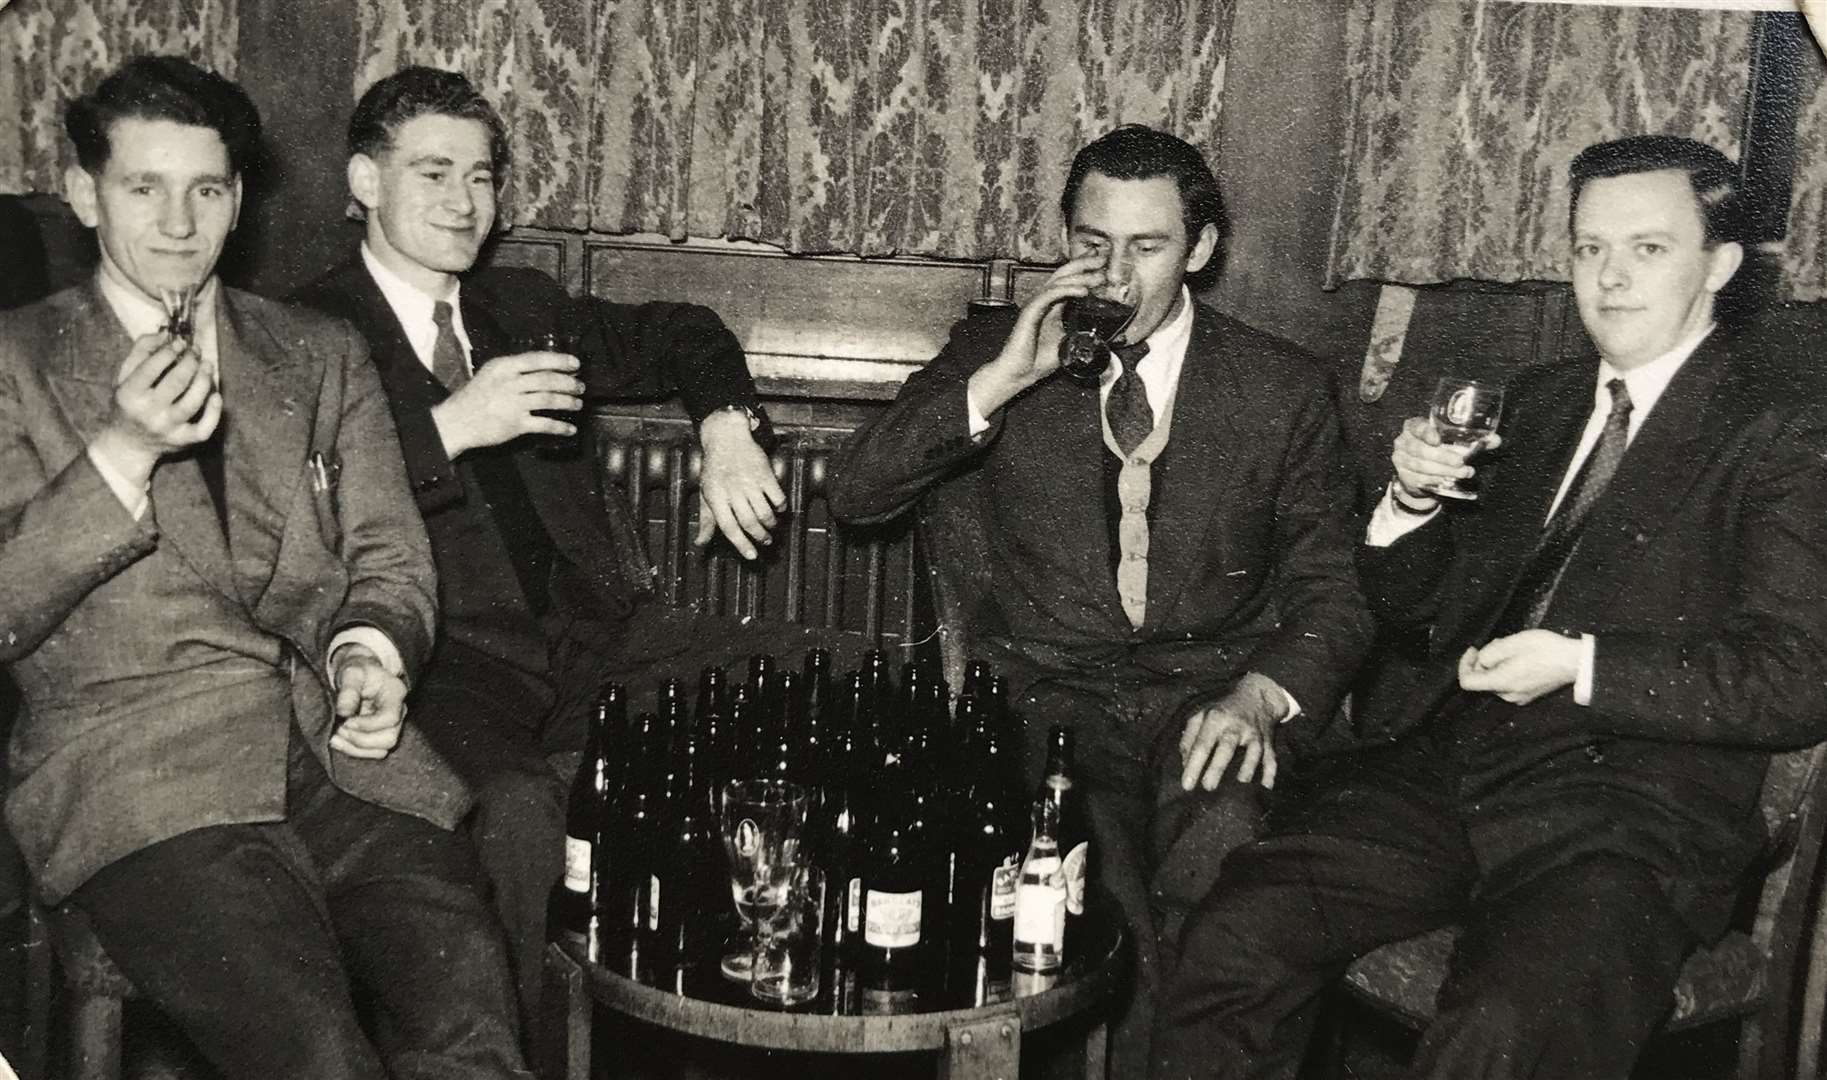 Peter Newman on the right relaxing with pals, his chum Mike is two along from him